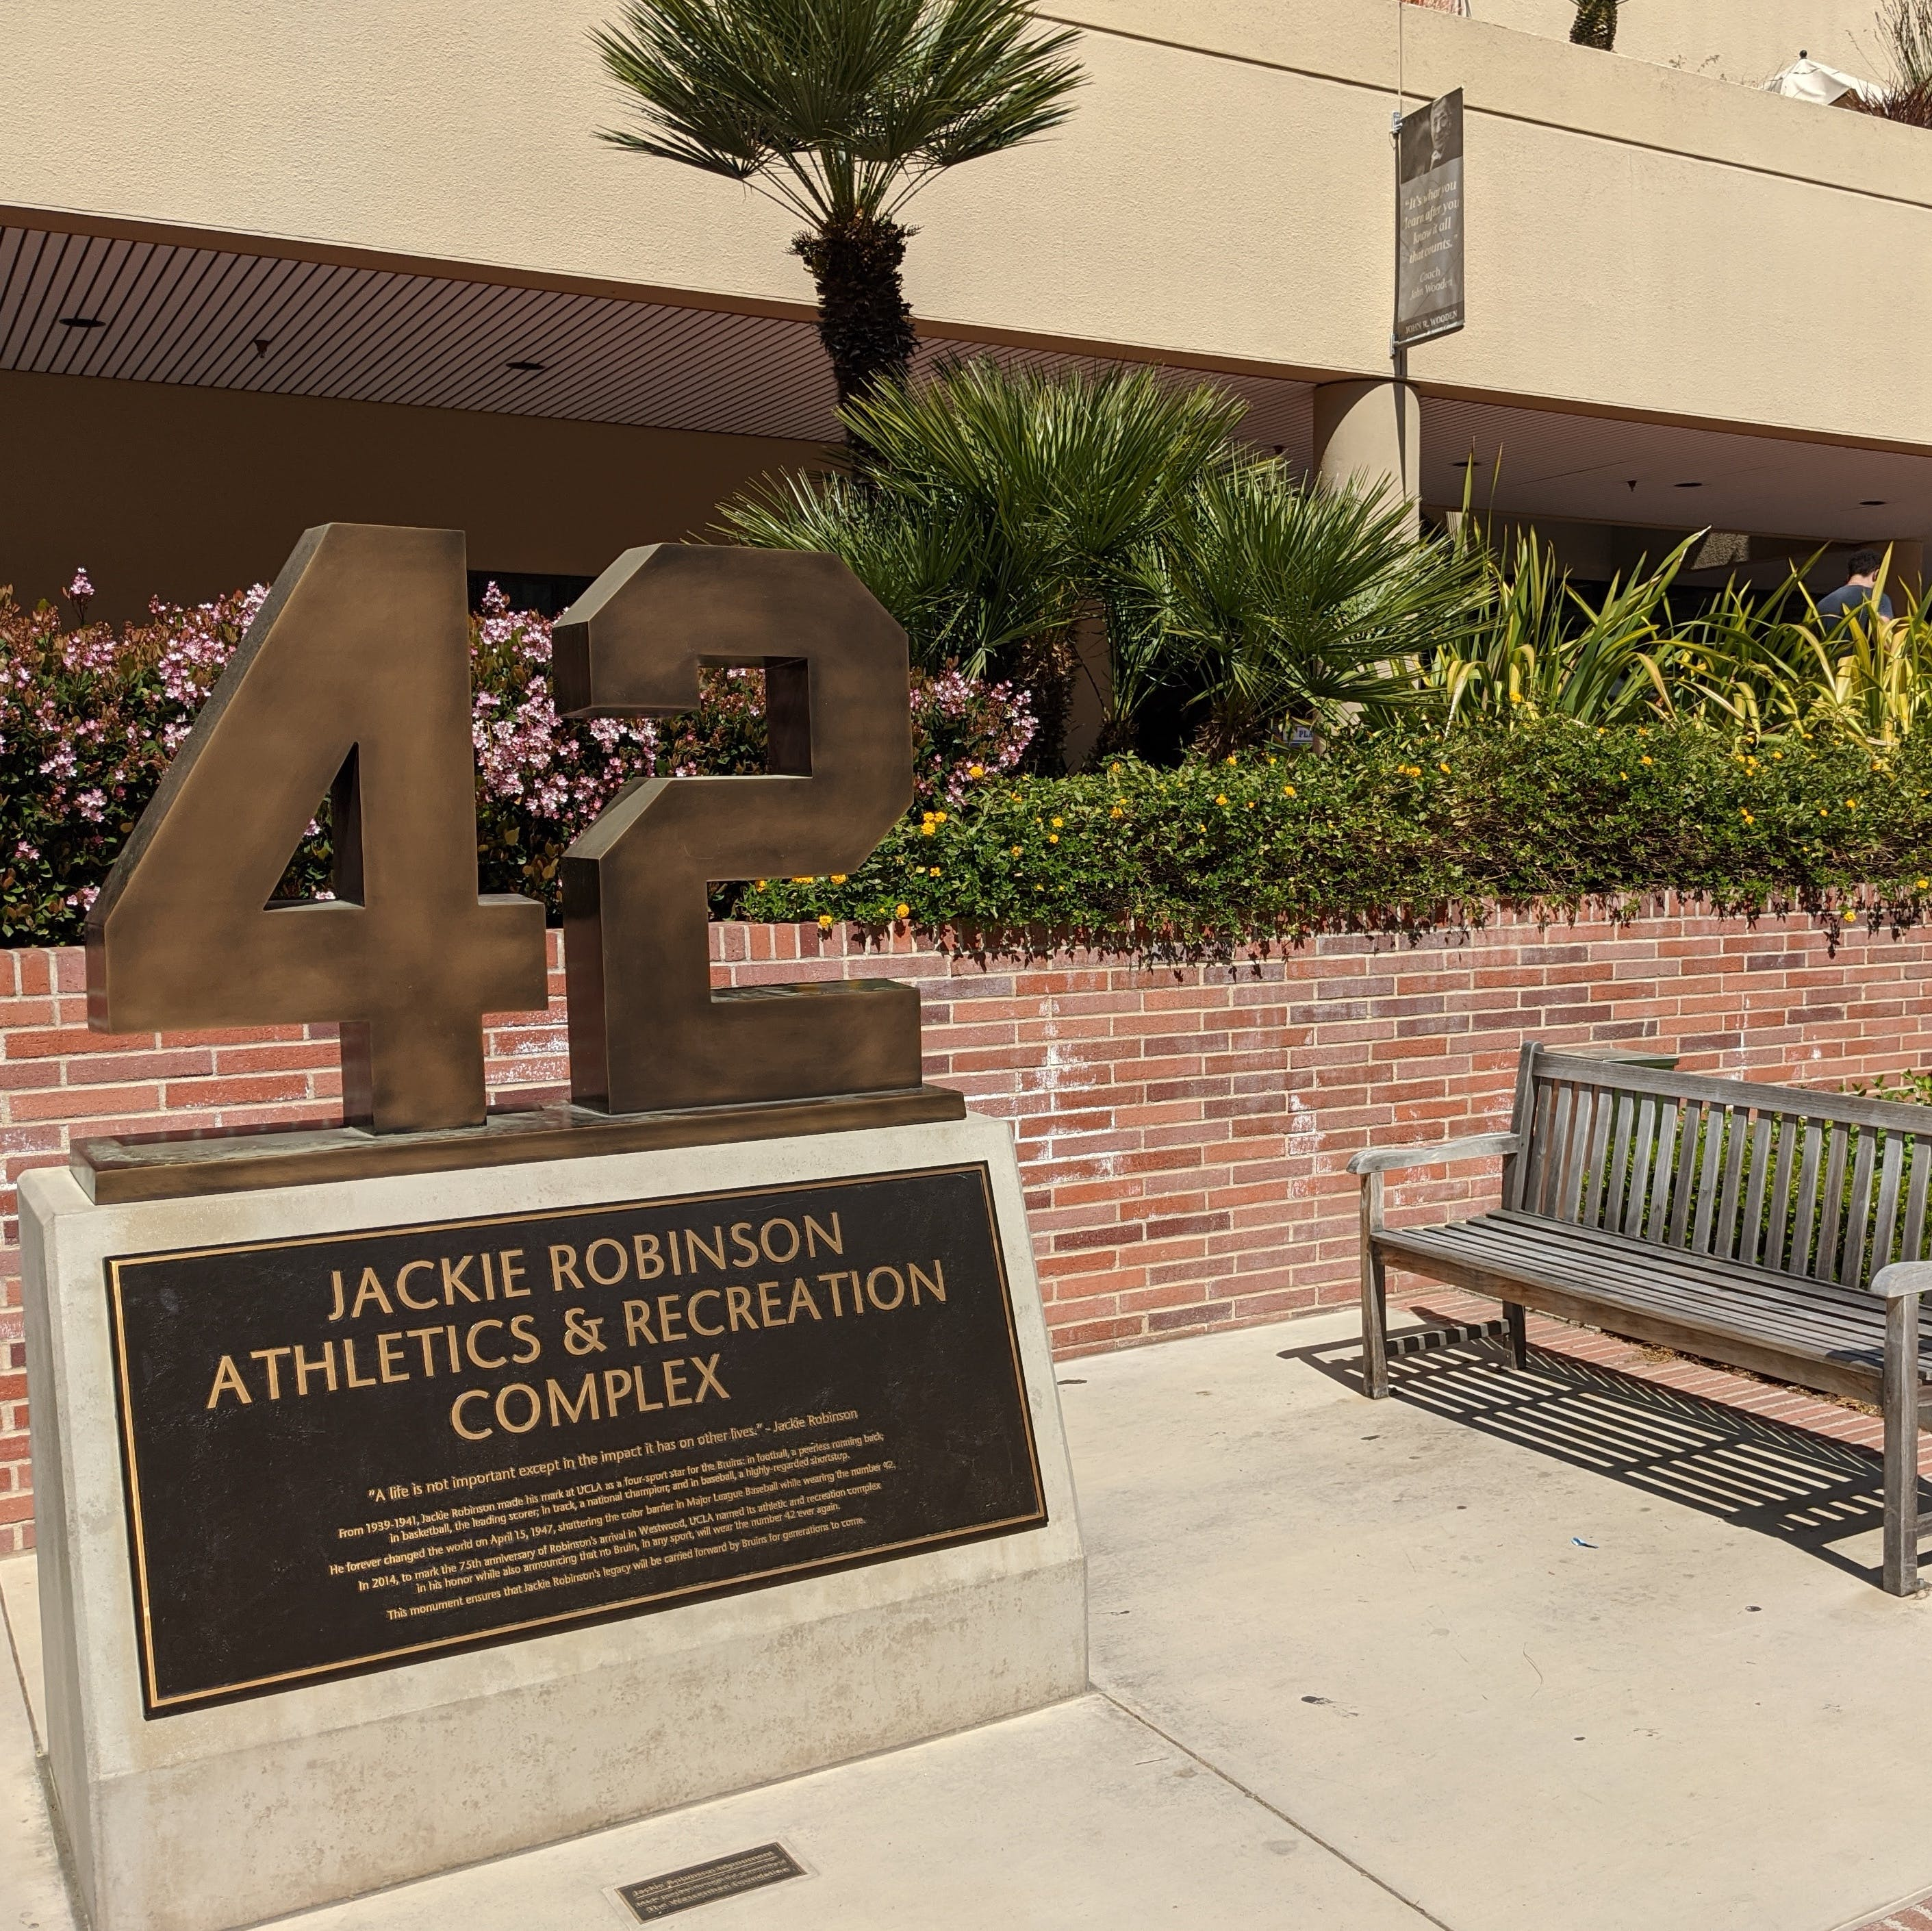 Jackie Robinson number 42 sculpture and commemorative placard at UCLA campus